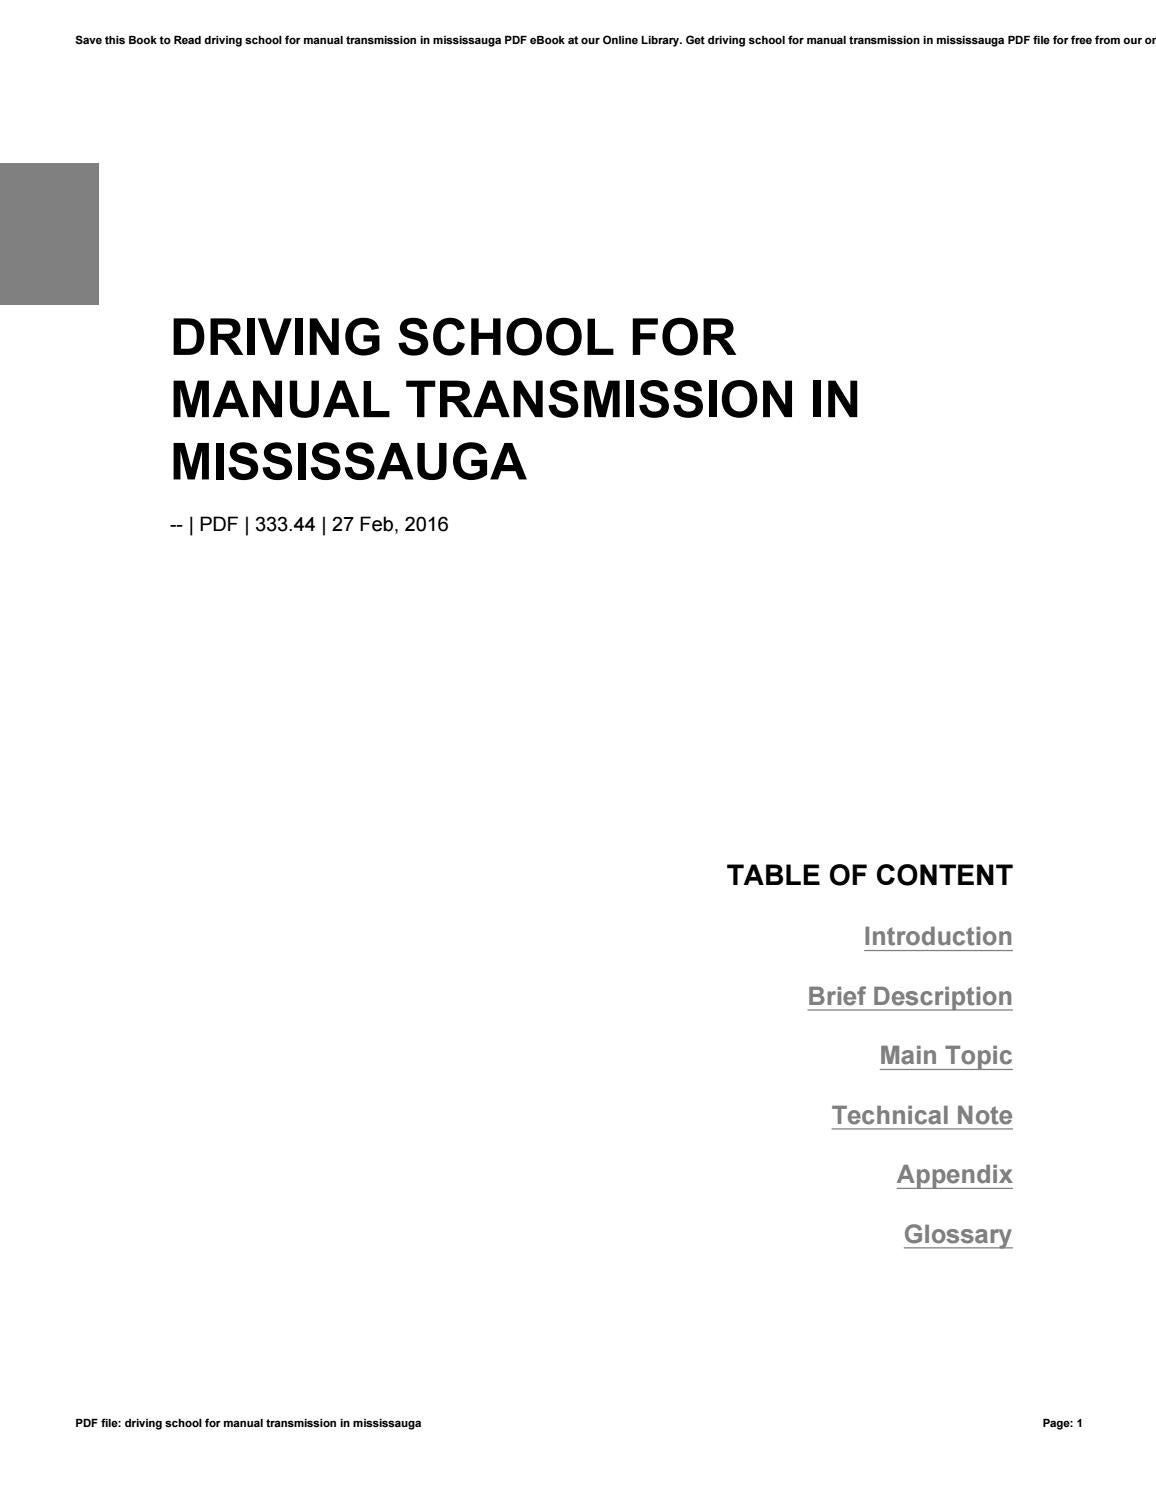 Driving school for manual transmission in mississauga by